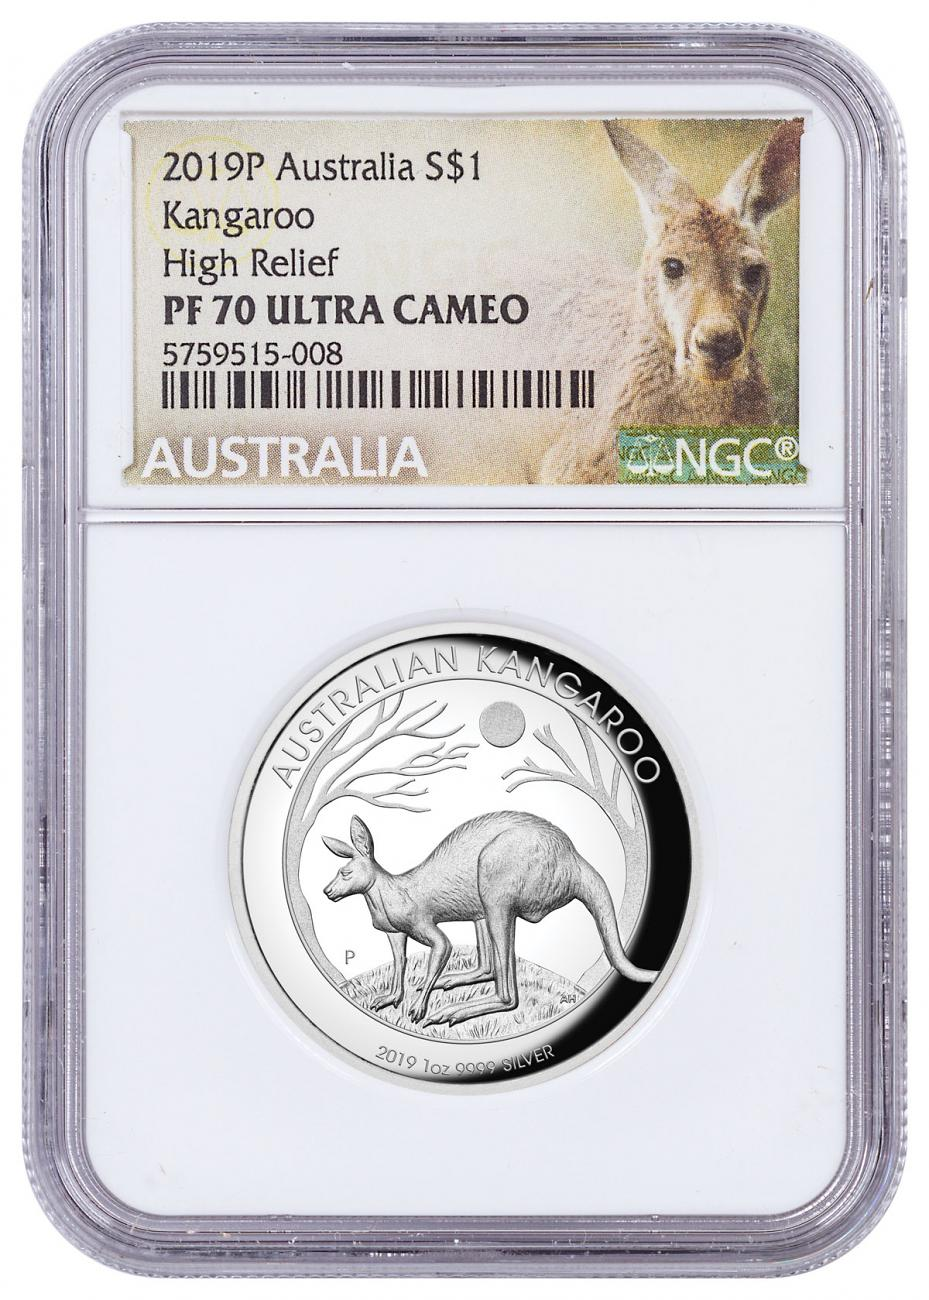 2019-P Australia 1 oz High Relief Silver Kangaroo Proof $1 Coin NGC PF70 UC Kangaroo Label